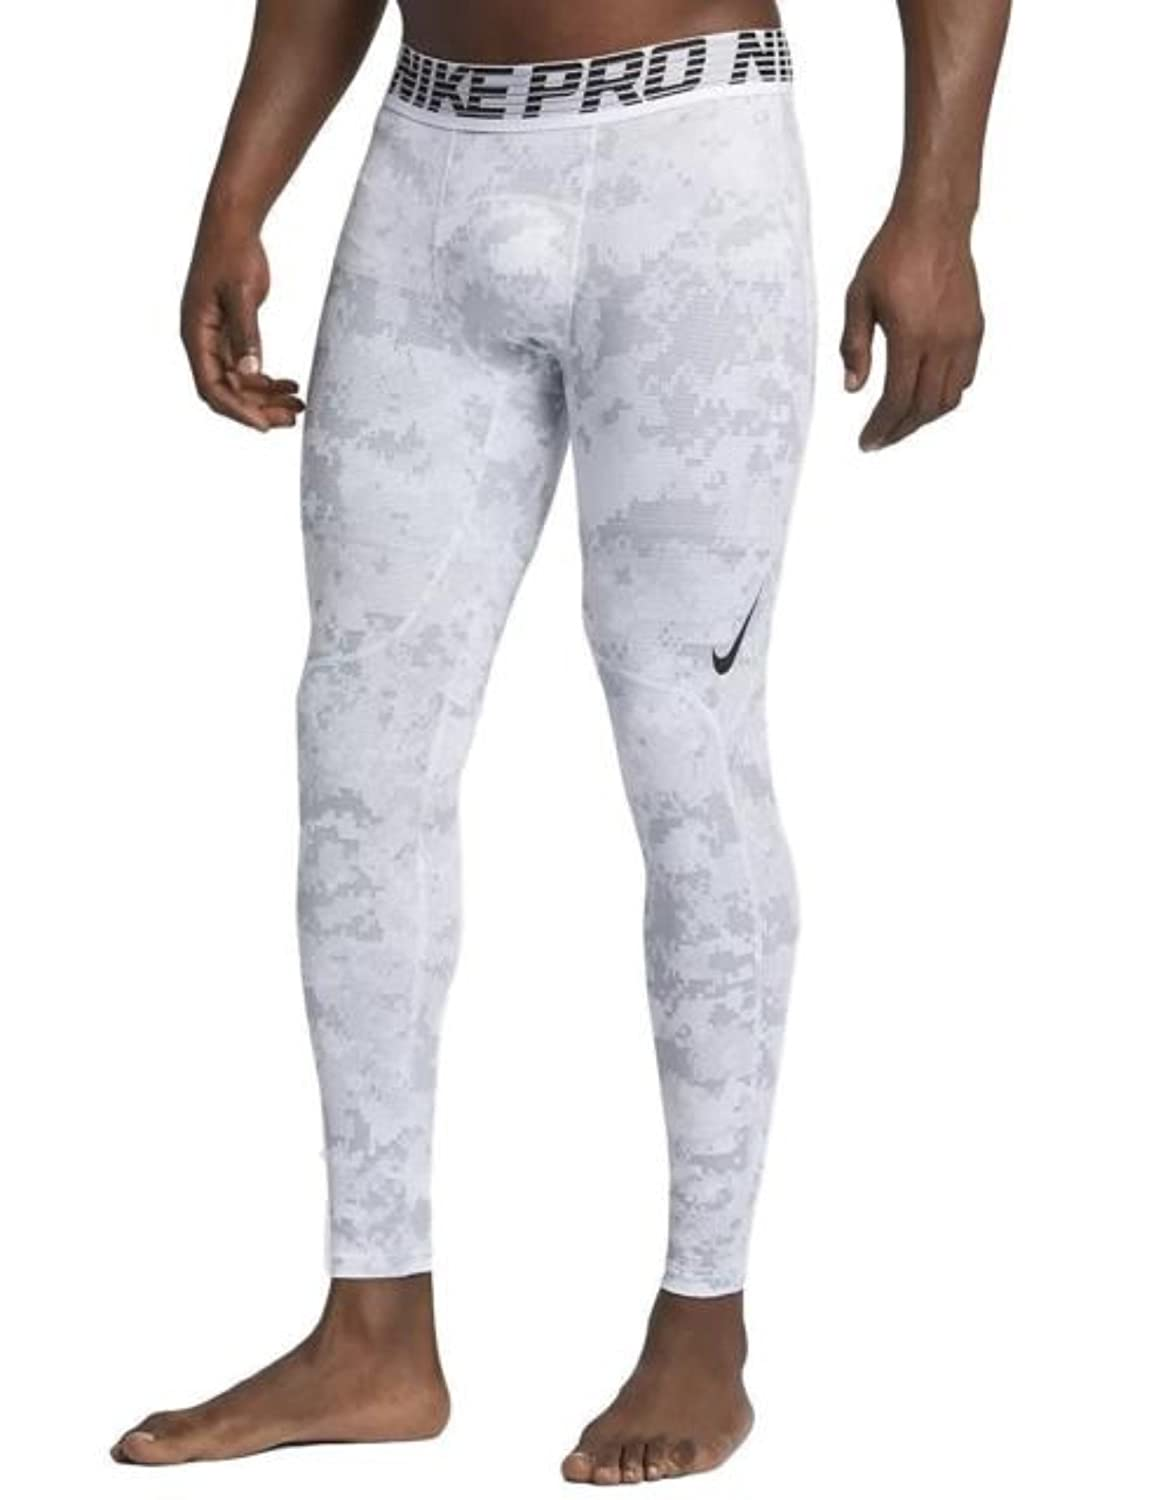 37a9303950c84 Top 10 wholesale Nike Camo Tights - Chinabrands.com